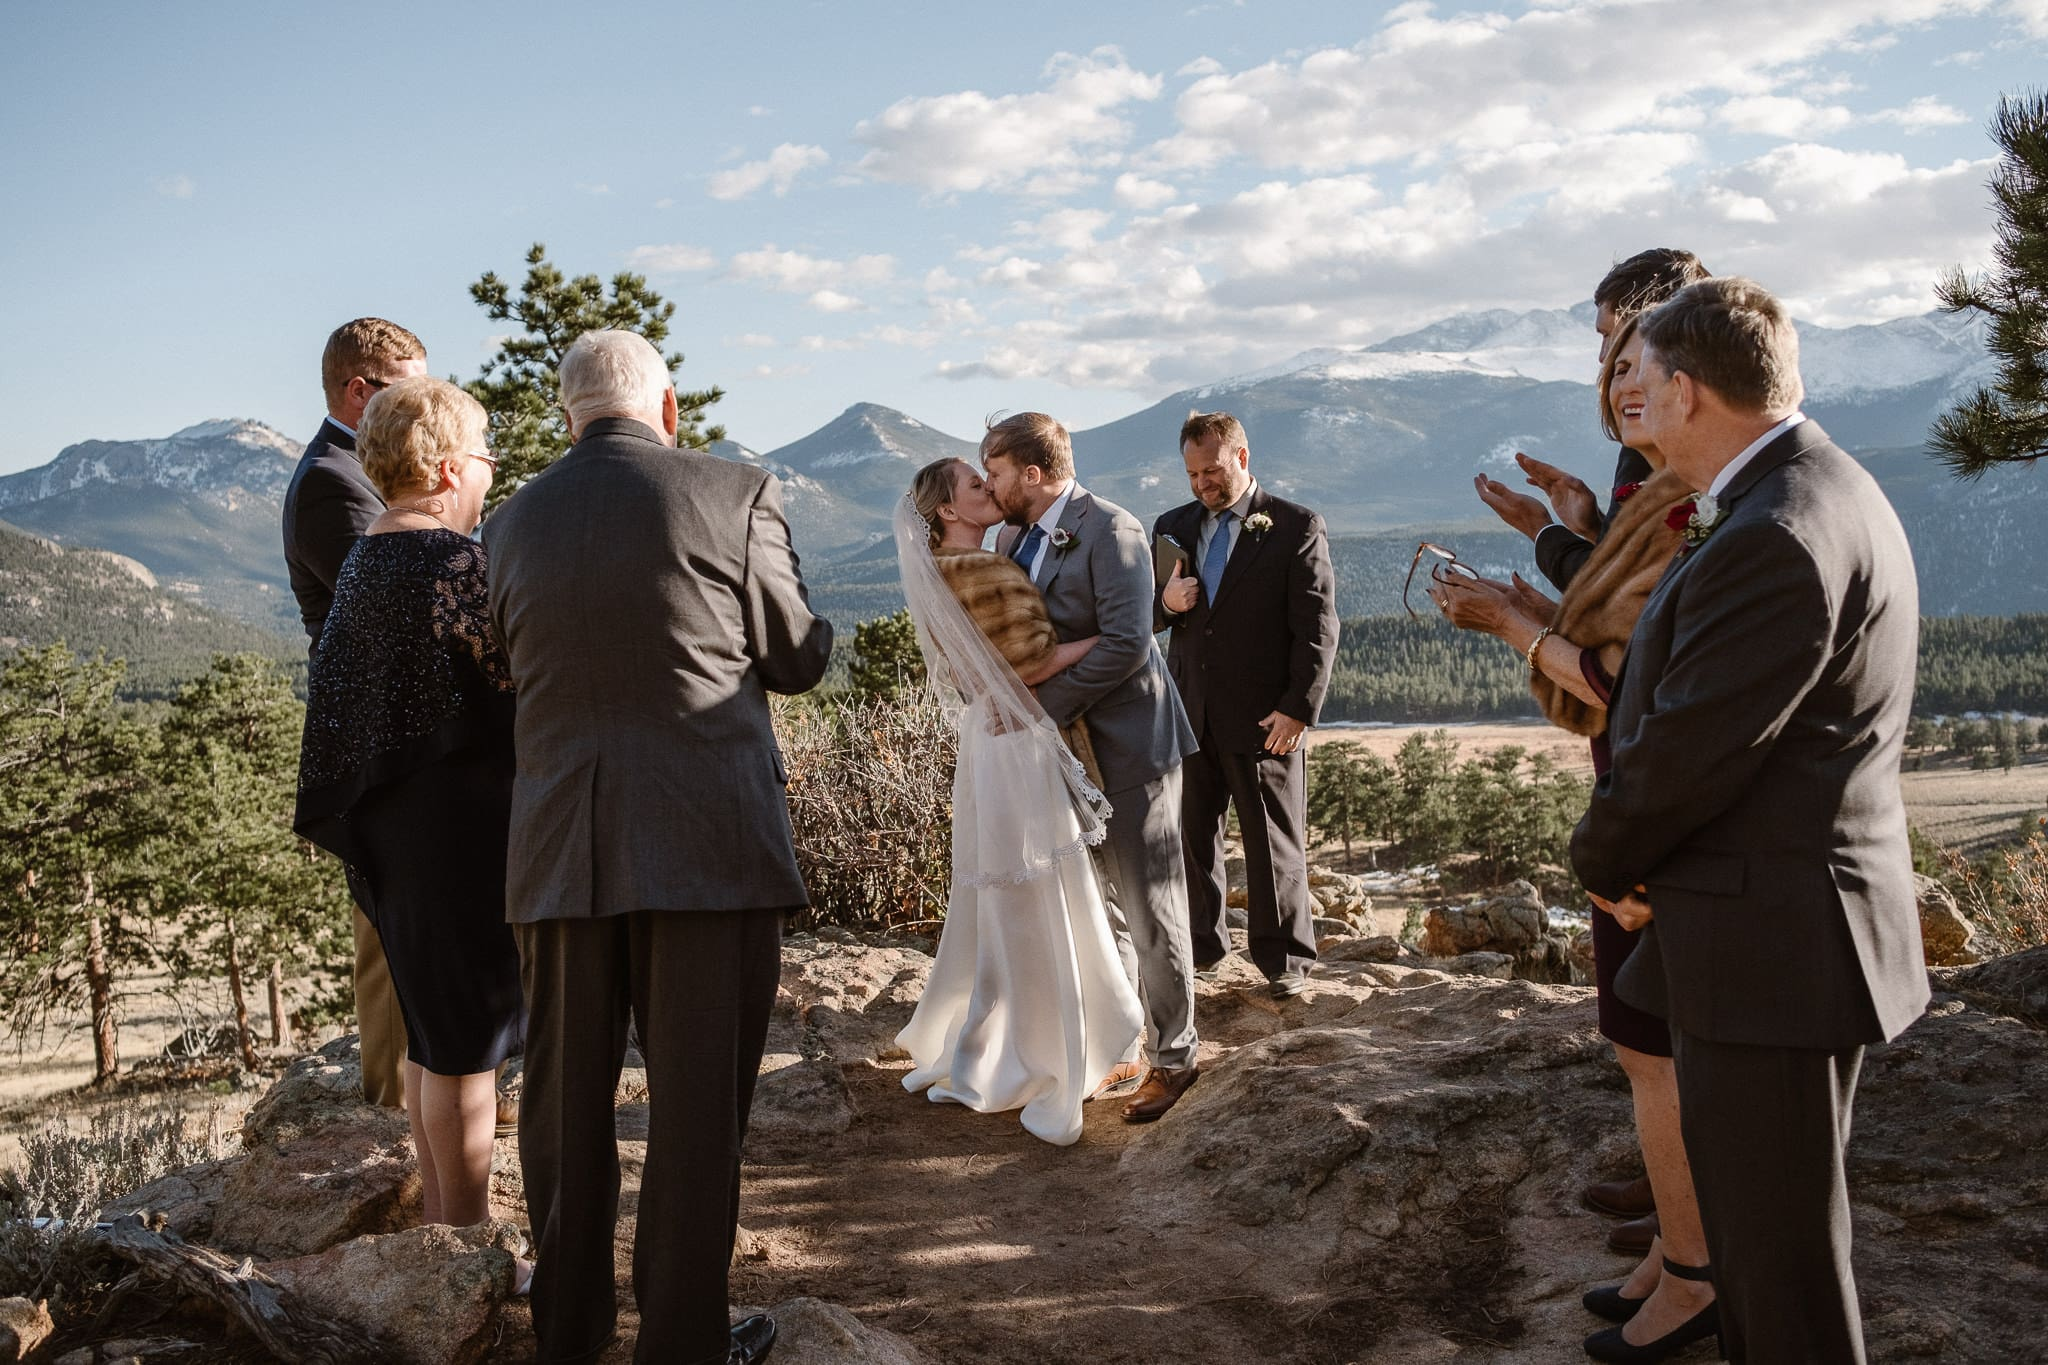 3M Curve Elopement Ceremony, Rocky Mountain National Park wedding photographer, Colorado mountain elopement, bride and groom first kiss, best month to elope in Colorado